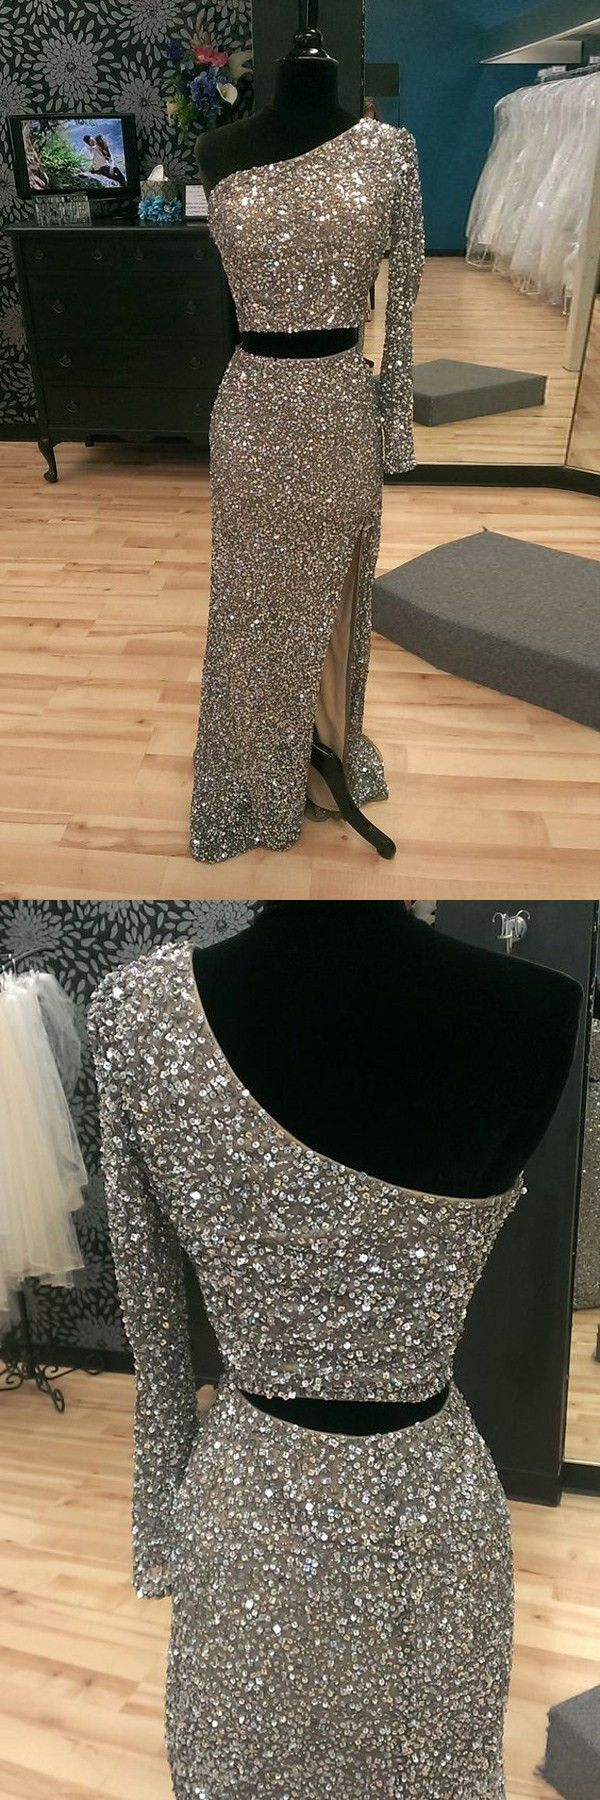 2017 prom dress,long prom dress,one-shoulder prom party dresses,sparkling prom party dresses,elegant evening gowns,fancy one-shoulder prom party dresses,women fashion,chic fashion